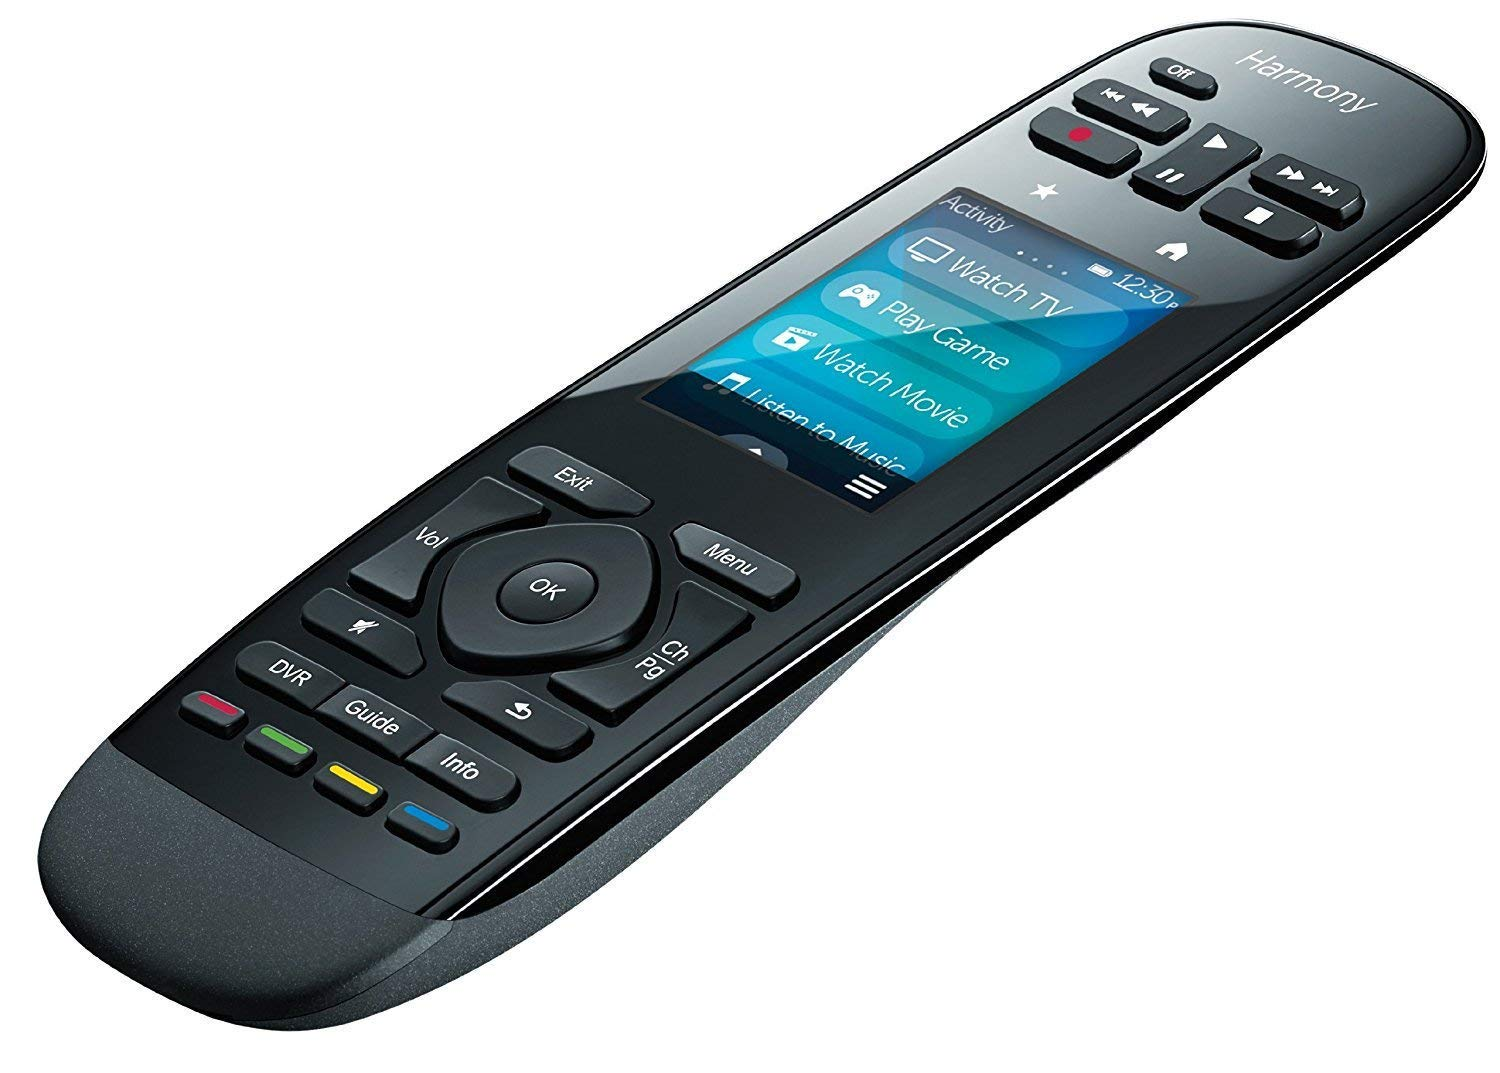 Logitech Harmony 2019 Ultimate One Universal Infrared Remote with Customizable Touch Screen Control up to 15 Devices Swipe and Tap Color Touchscreen 50 Favorite-Channel Icons-Harmony Hub Supported by Logitech (Image #3)